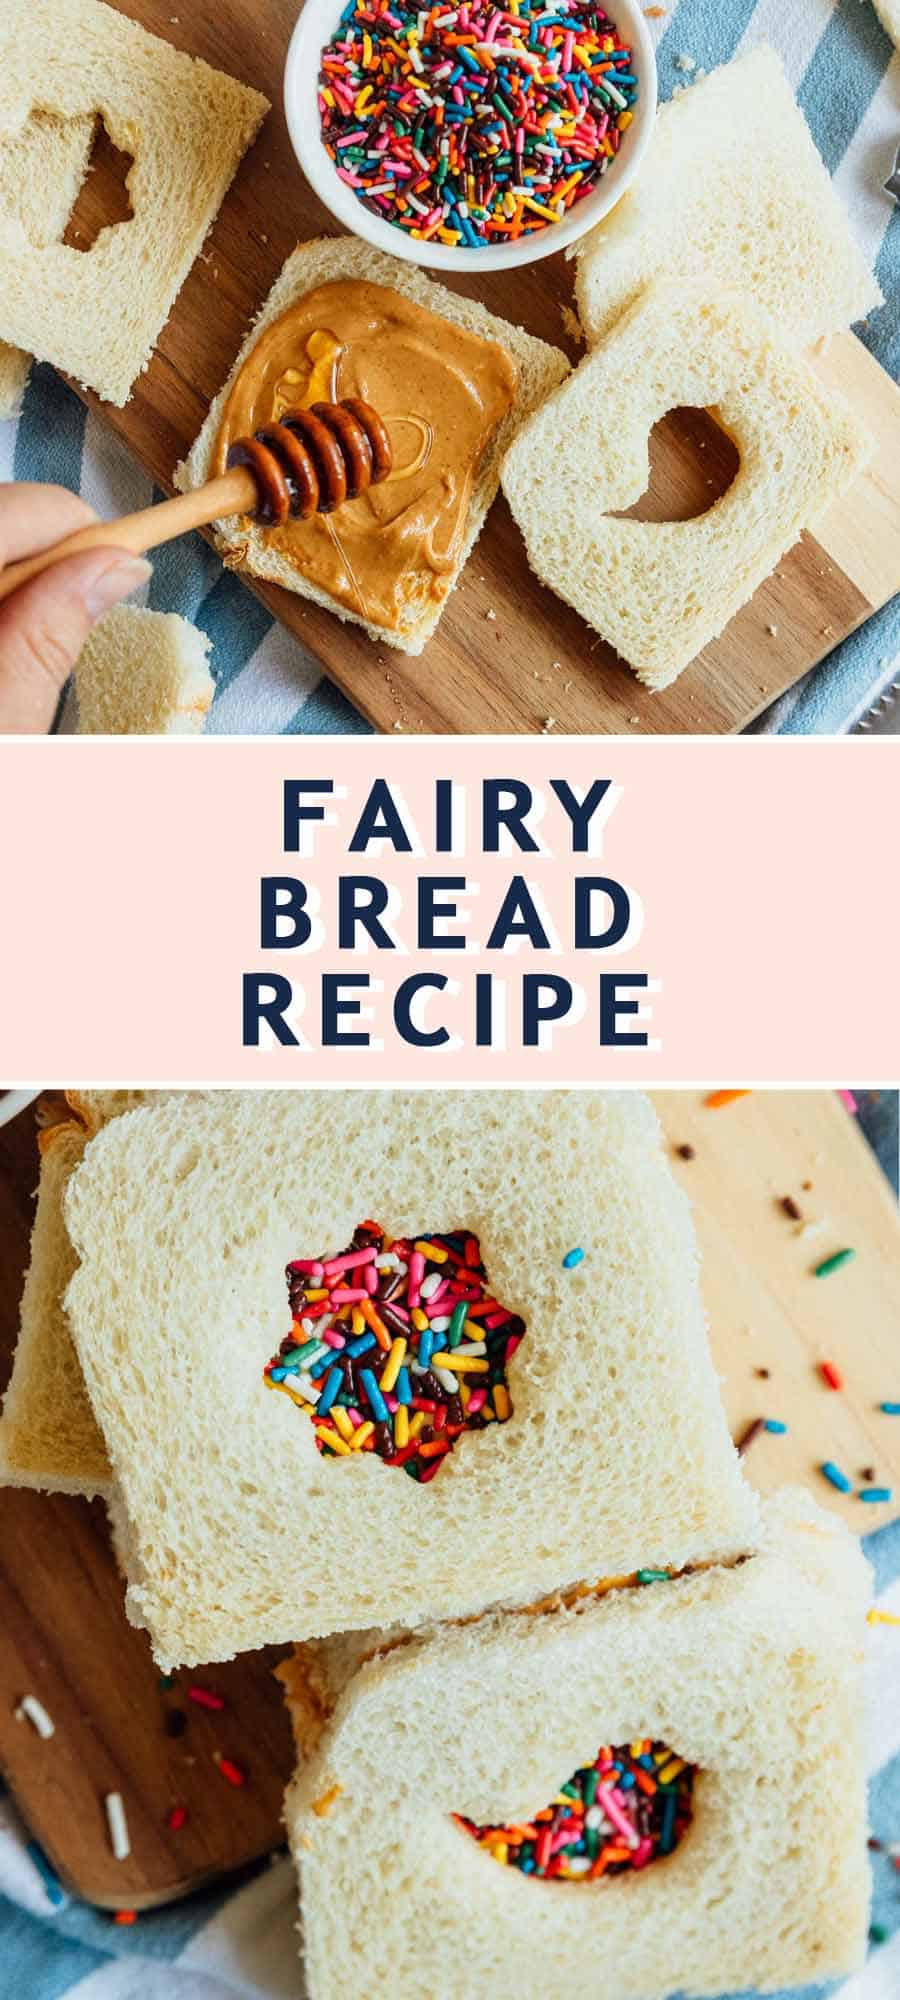 photo of the recipe card on how to make fairy bread by top Houston lifestyle blogger Ashley Rose of Sugar & Cloth